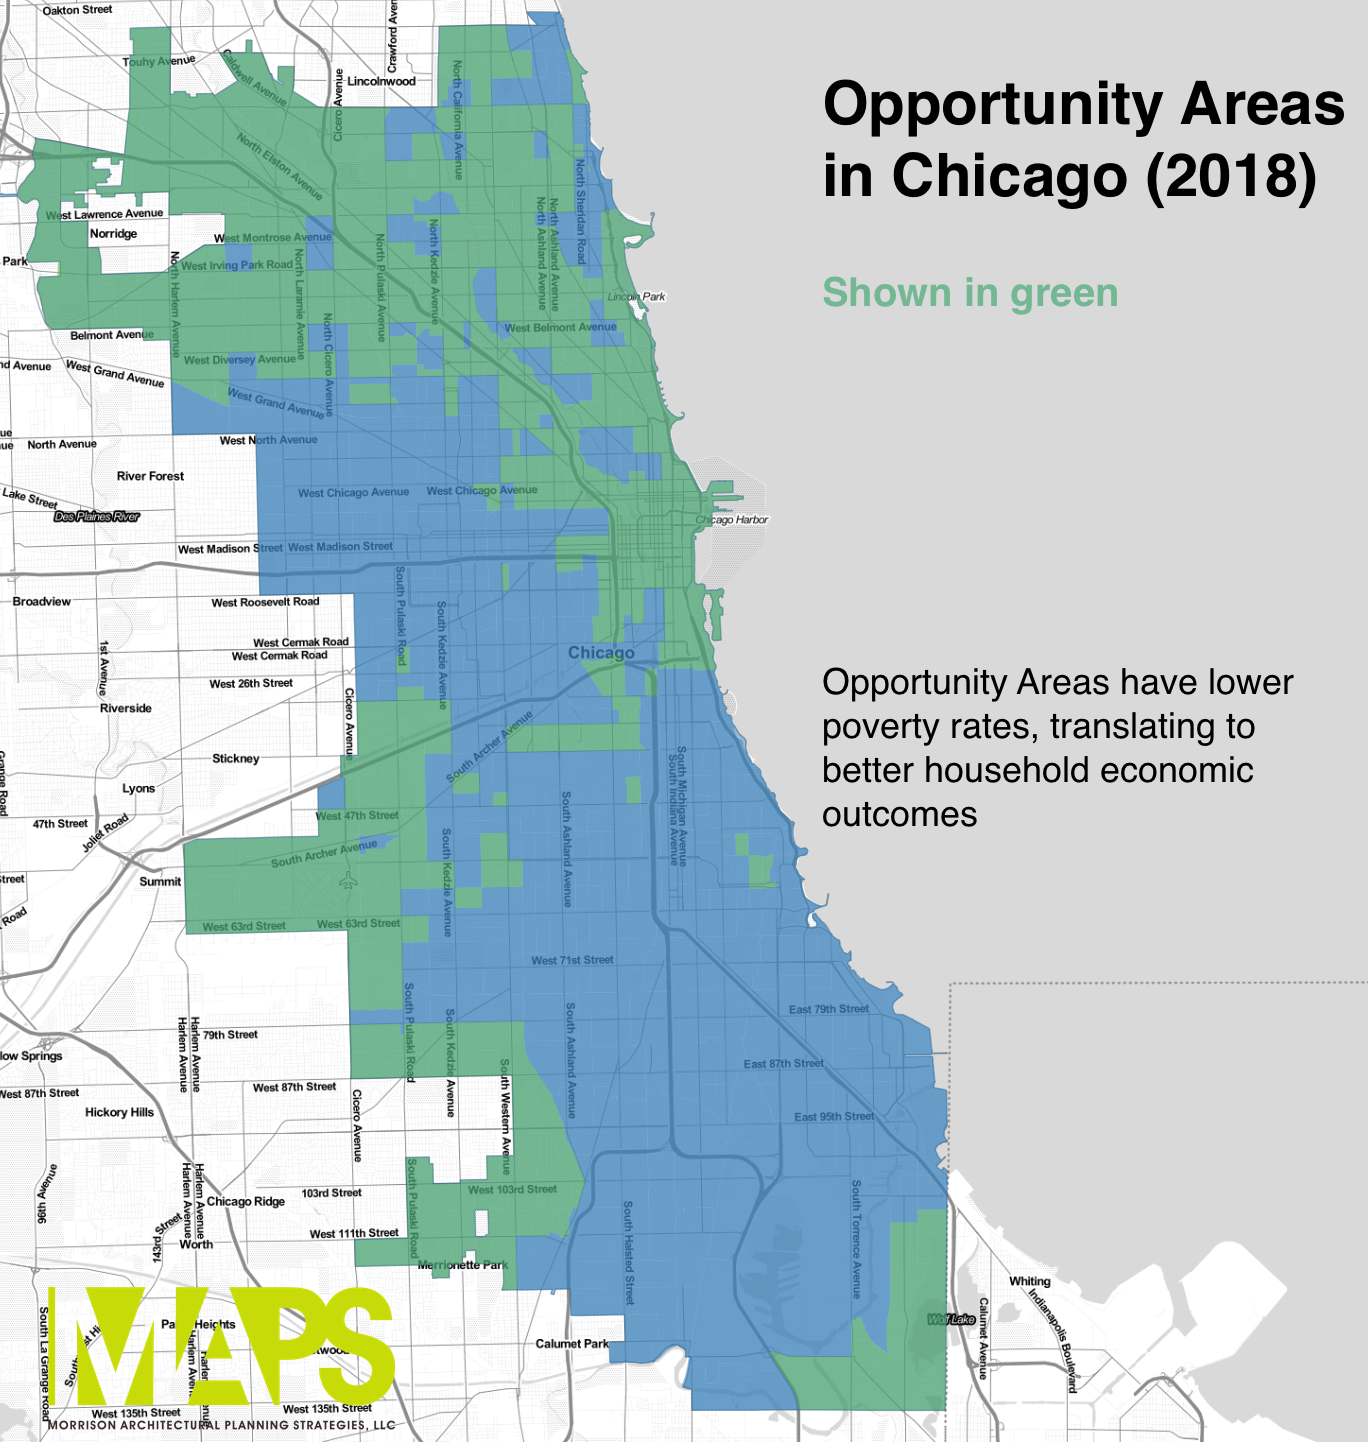 A map of Opportunity Areas in Chicago.